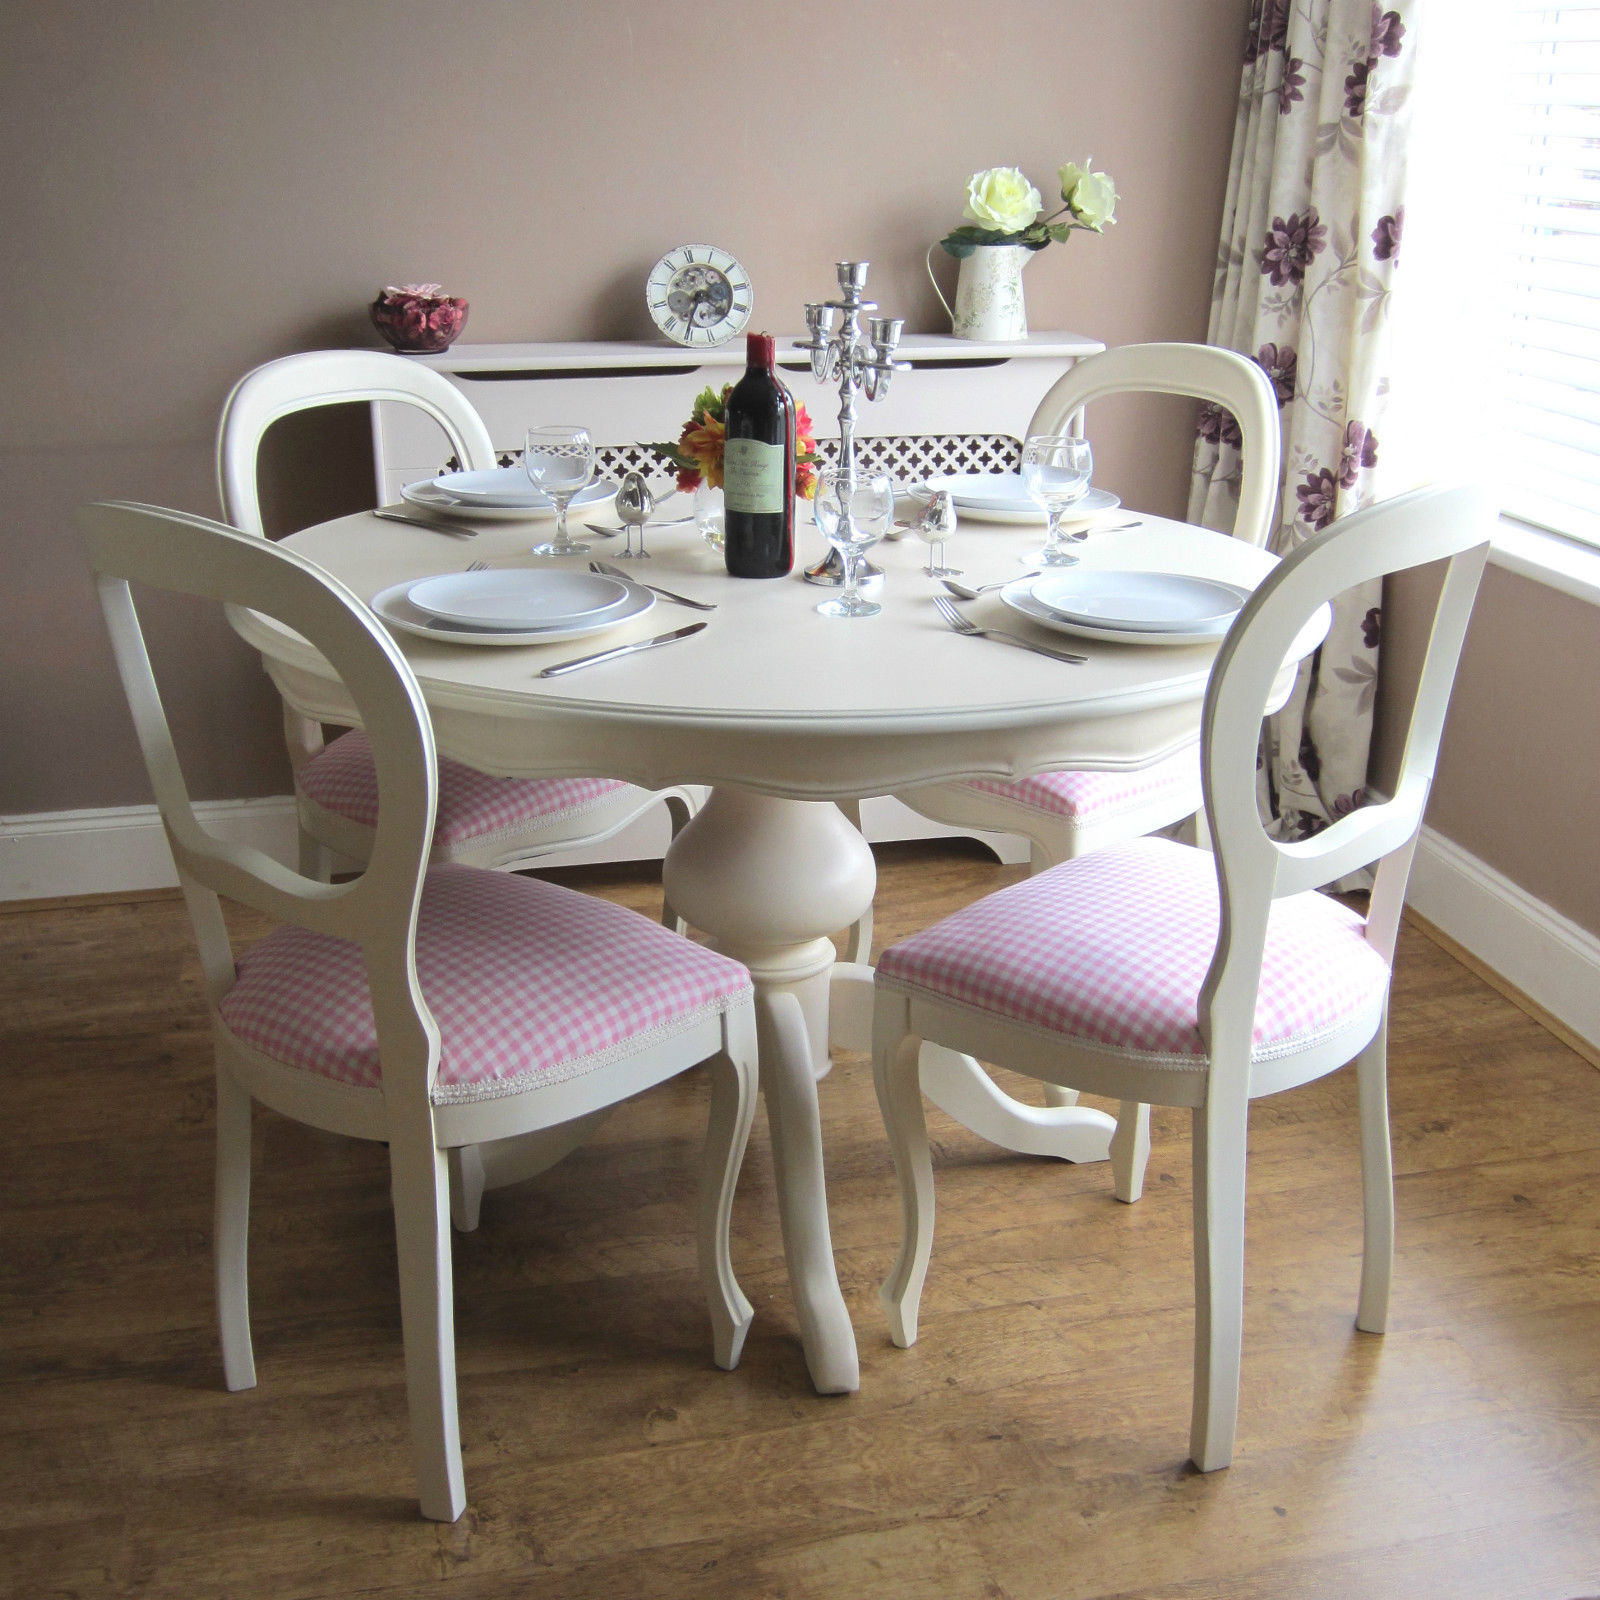 White Round Kitchen Table And Four Chairs With Cabinet And Flower Design Curtain